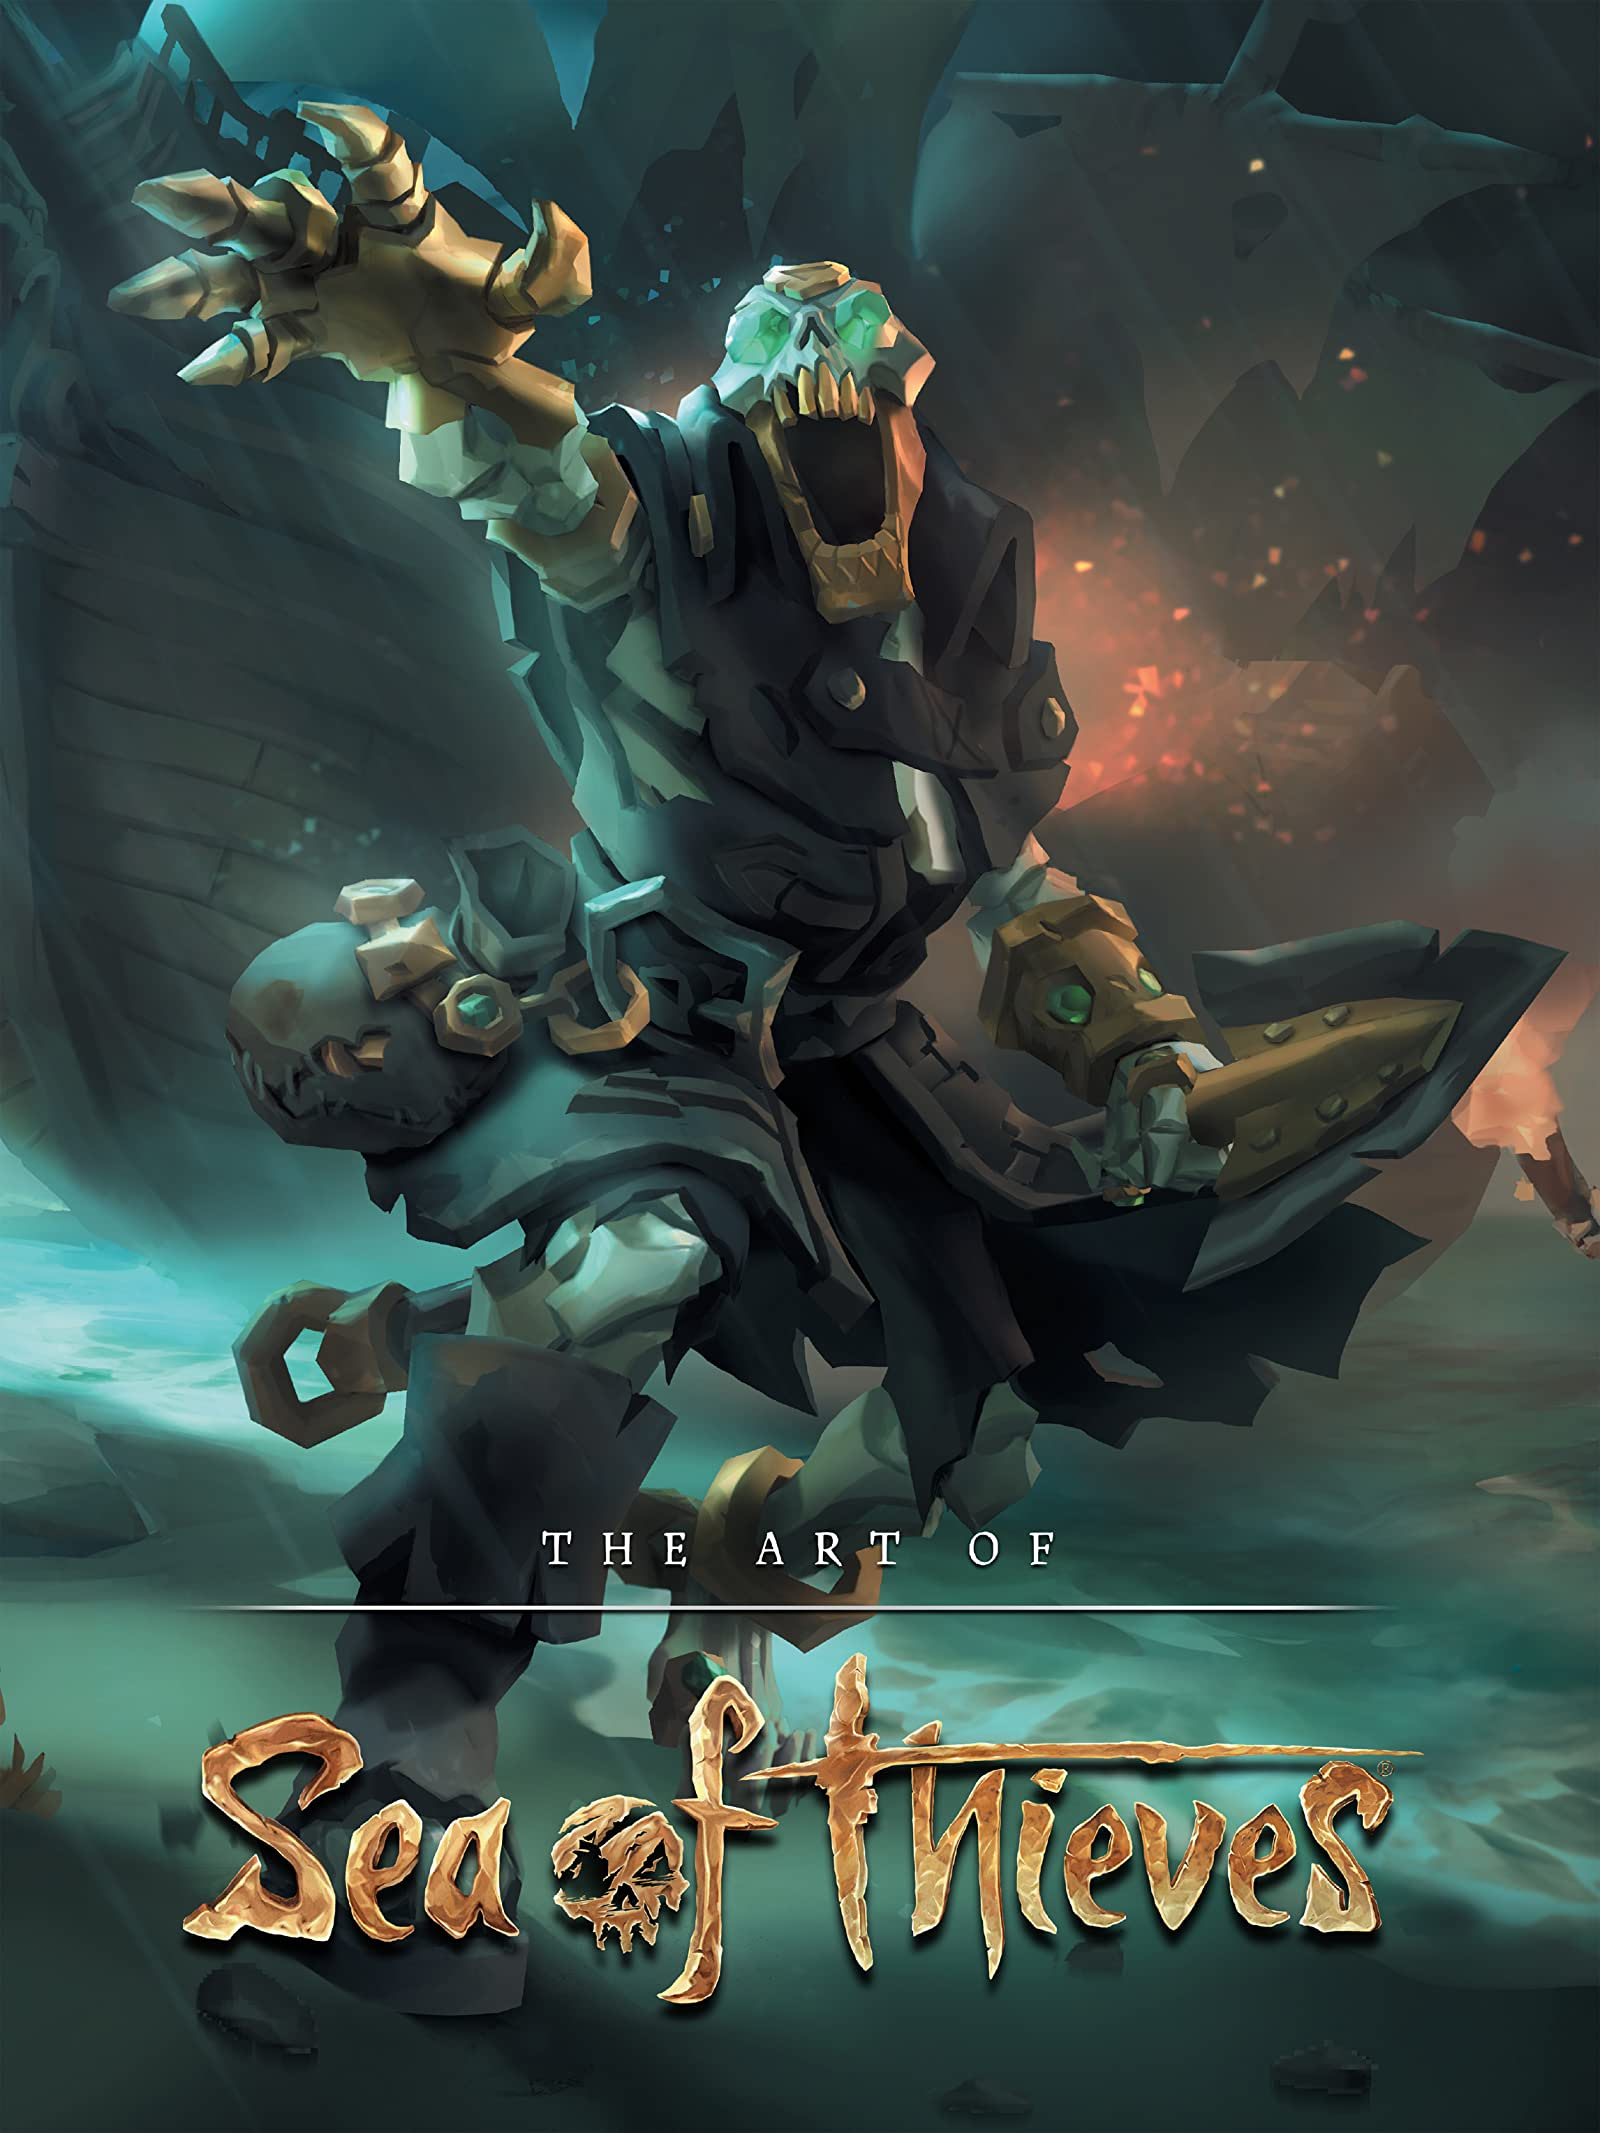 Thieves sea of